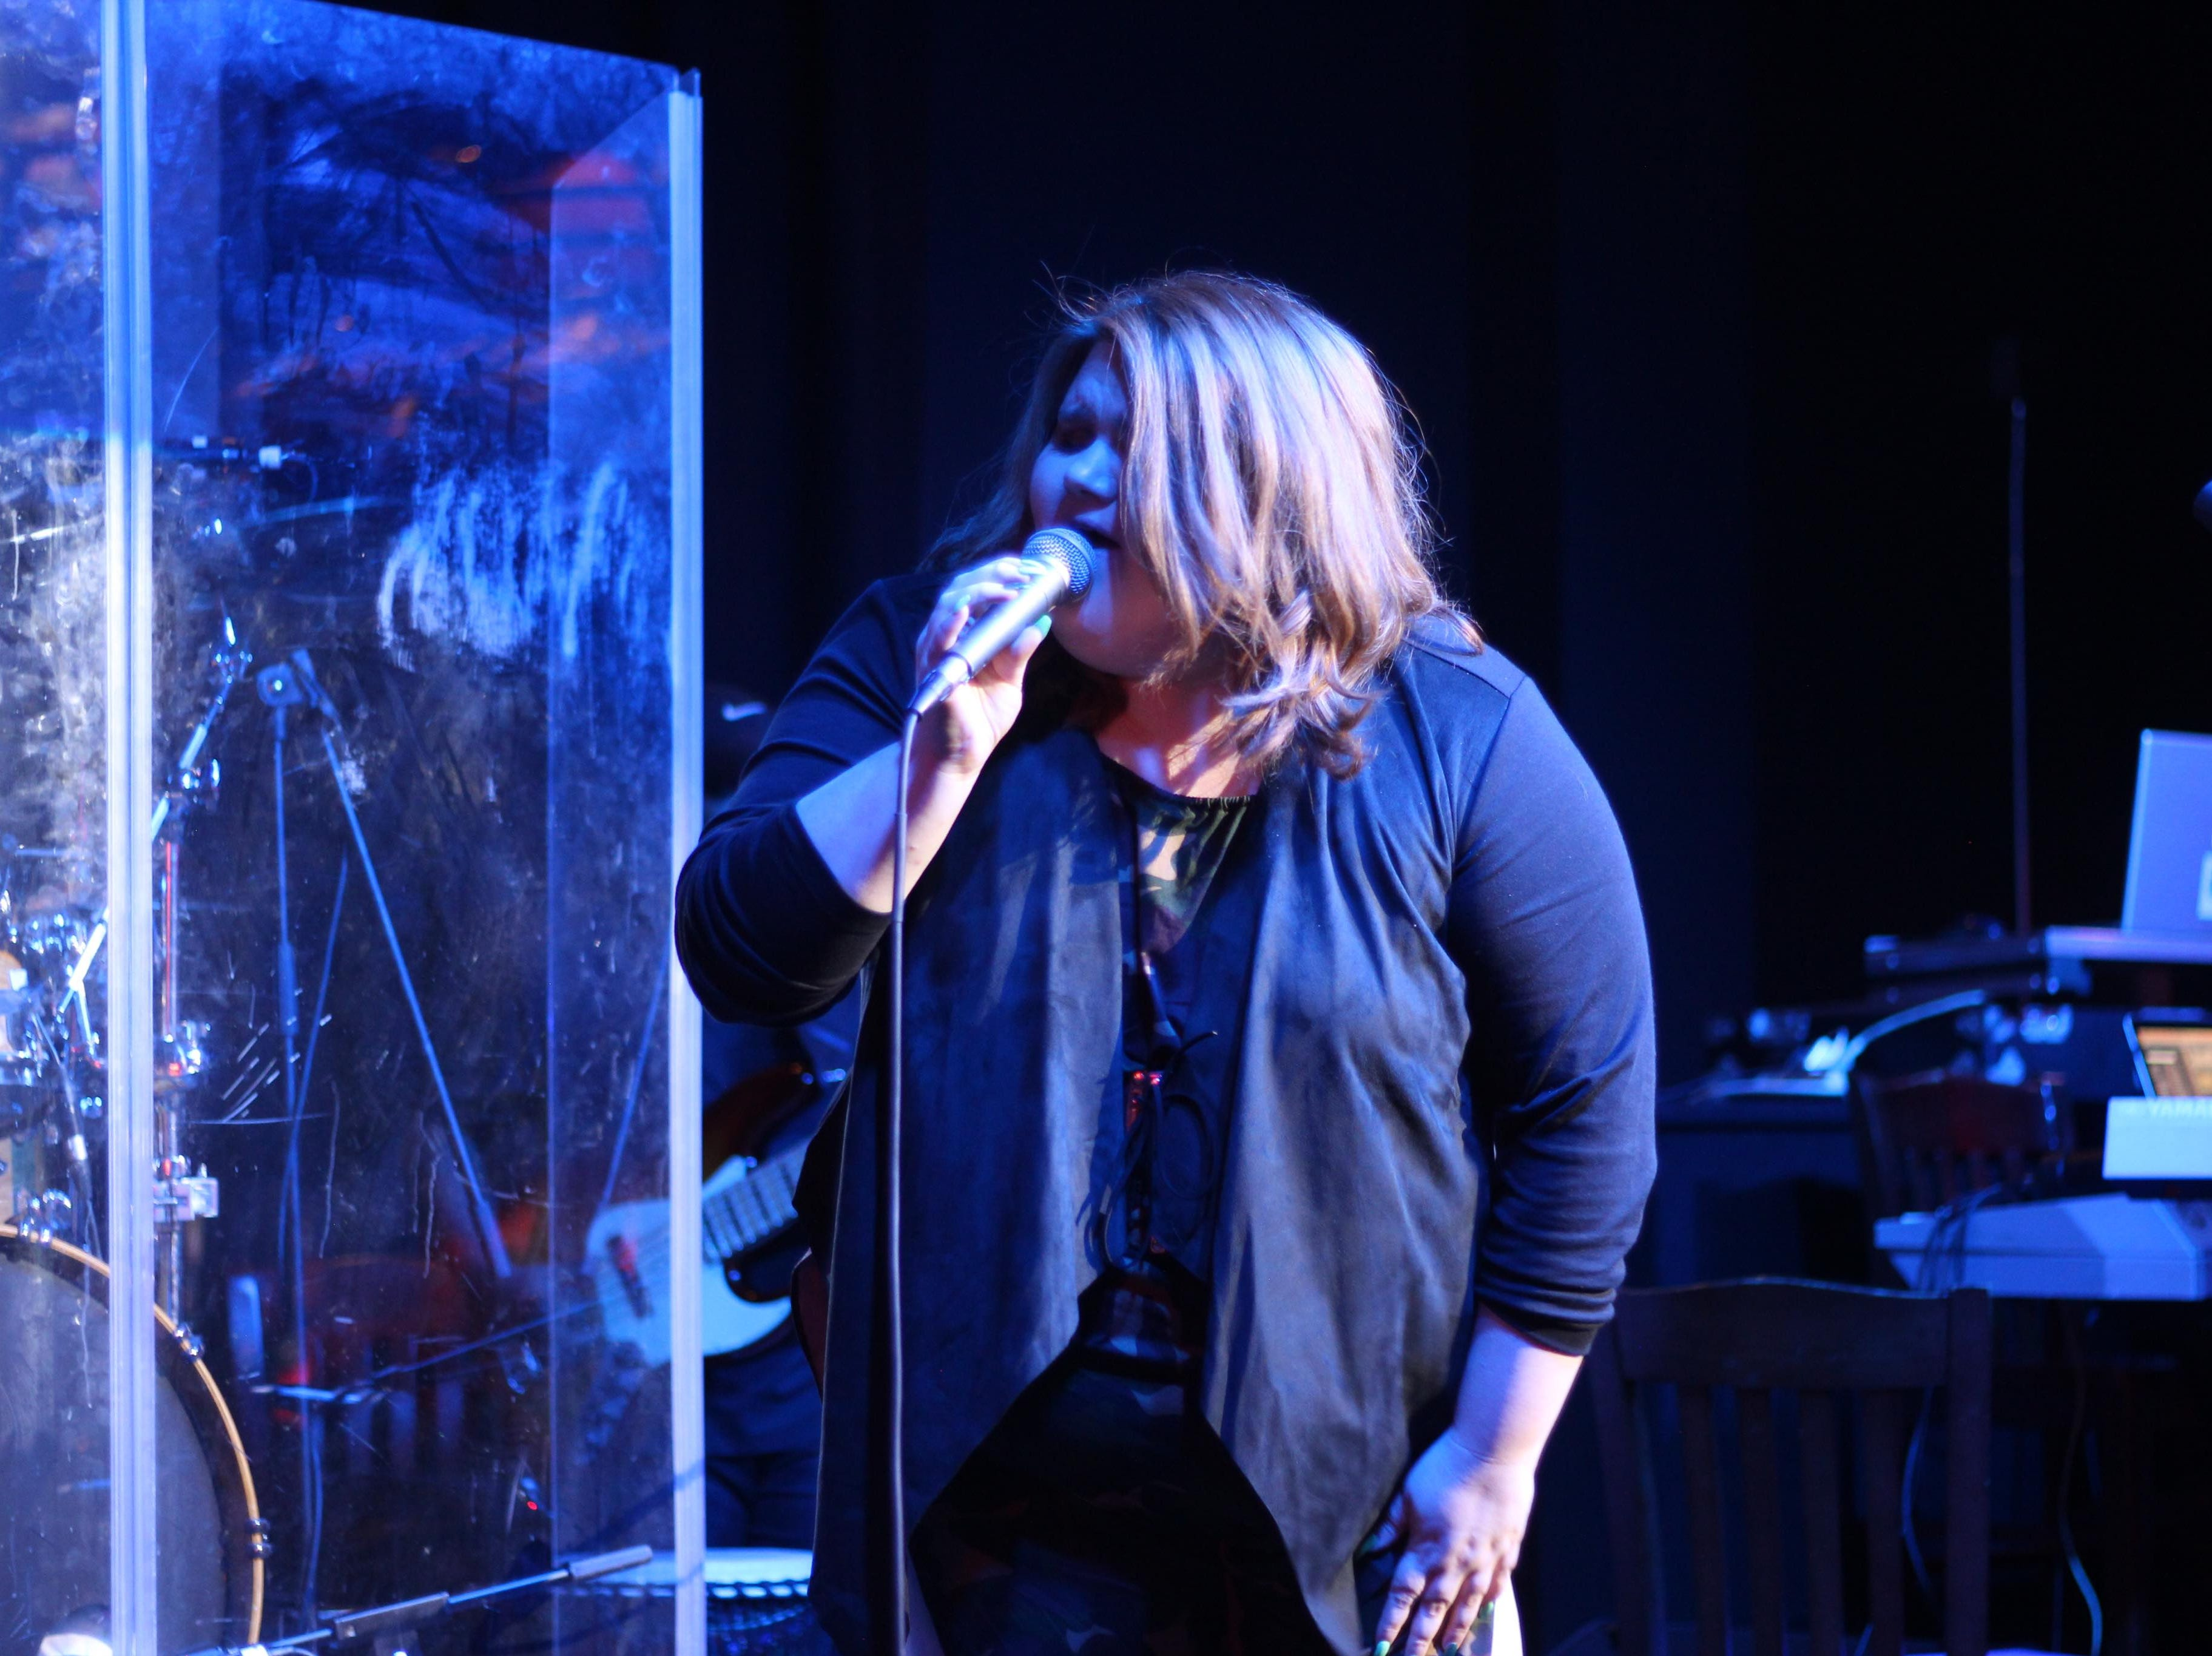 """MaKenzie Thomas, from season 15 of NBC's """"The Voice,"""" joined top 3 finalist Kirk Jay, a Montgomery resident and Bay Minette native, in a New Year's Eve concert Monday, Dec. 31, 2018, at B.B. King's Blues Club in Montgomery."""